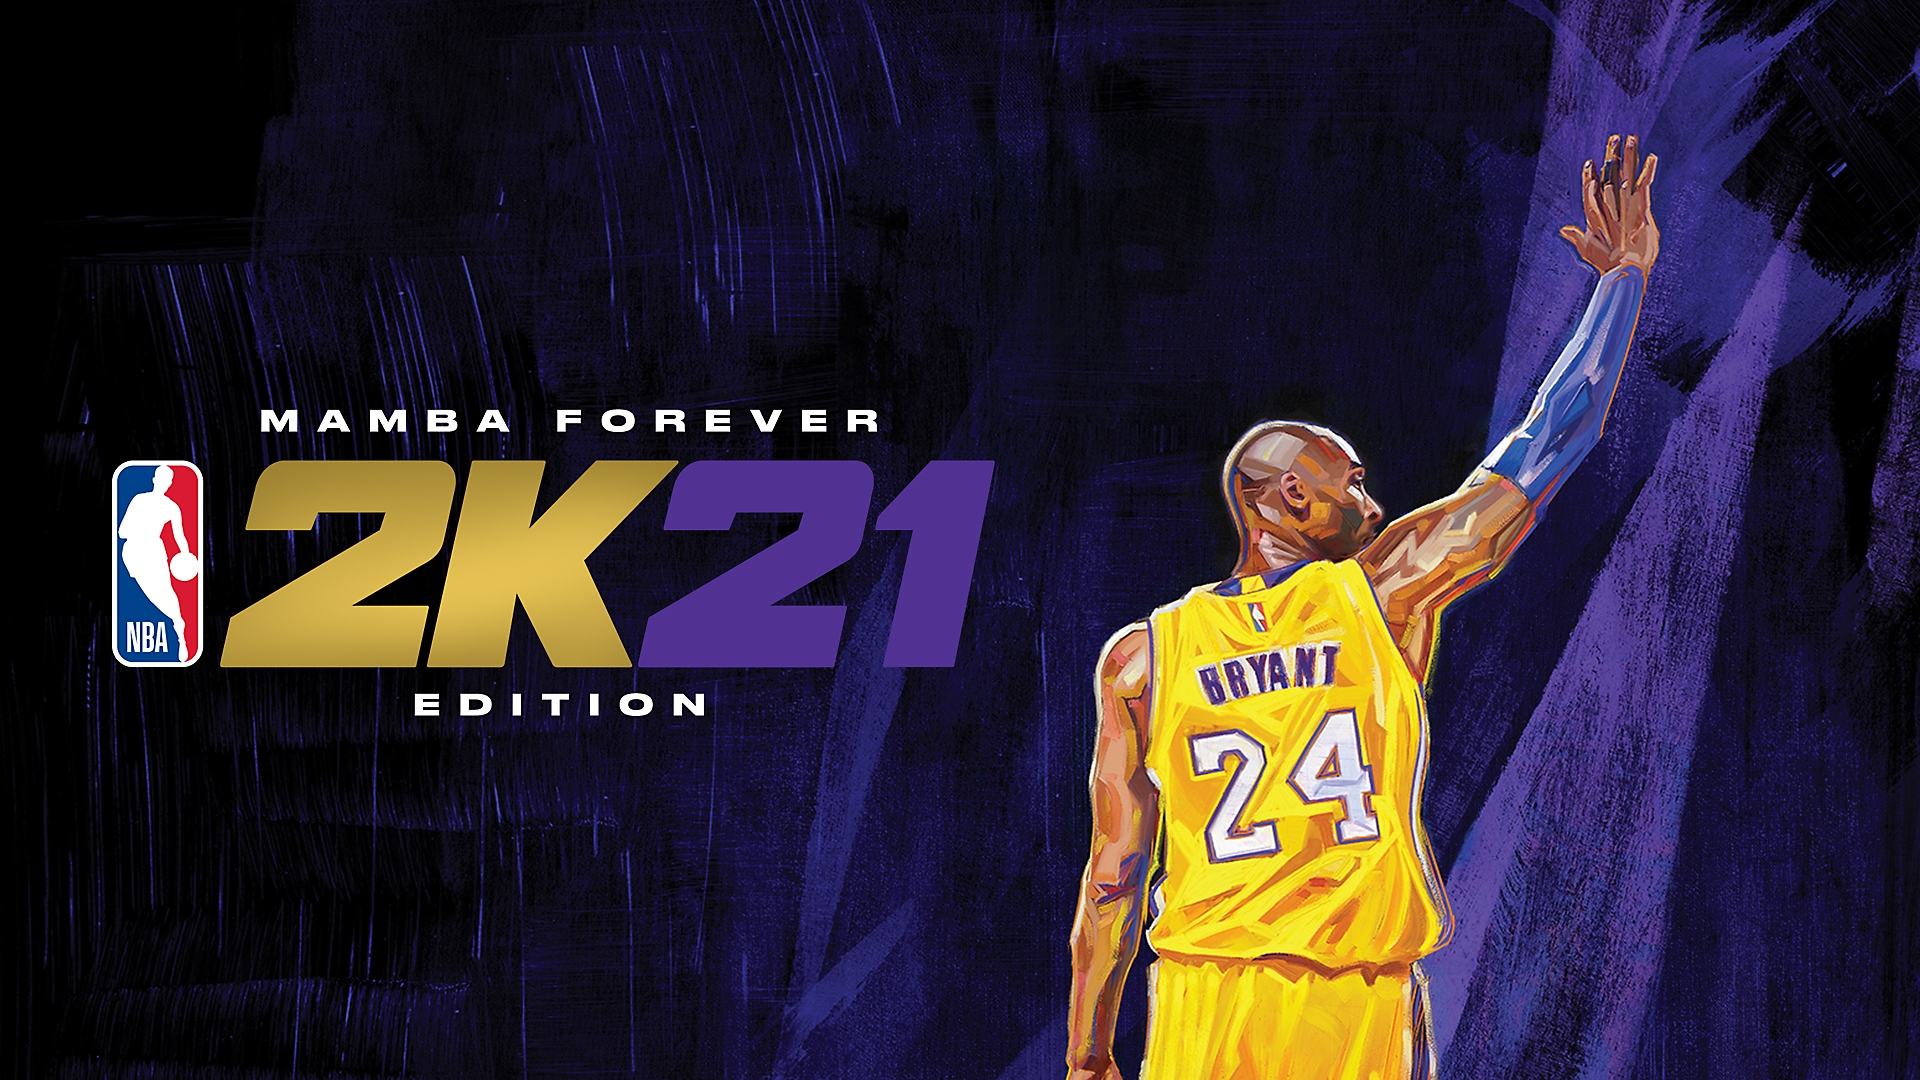 NBA 2K21 Mamba Edtion key art